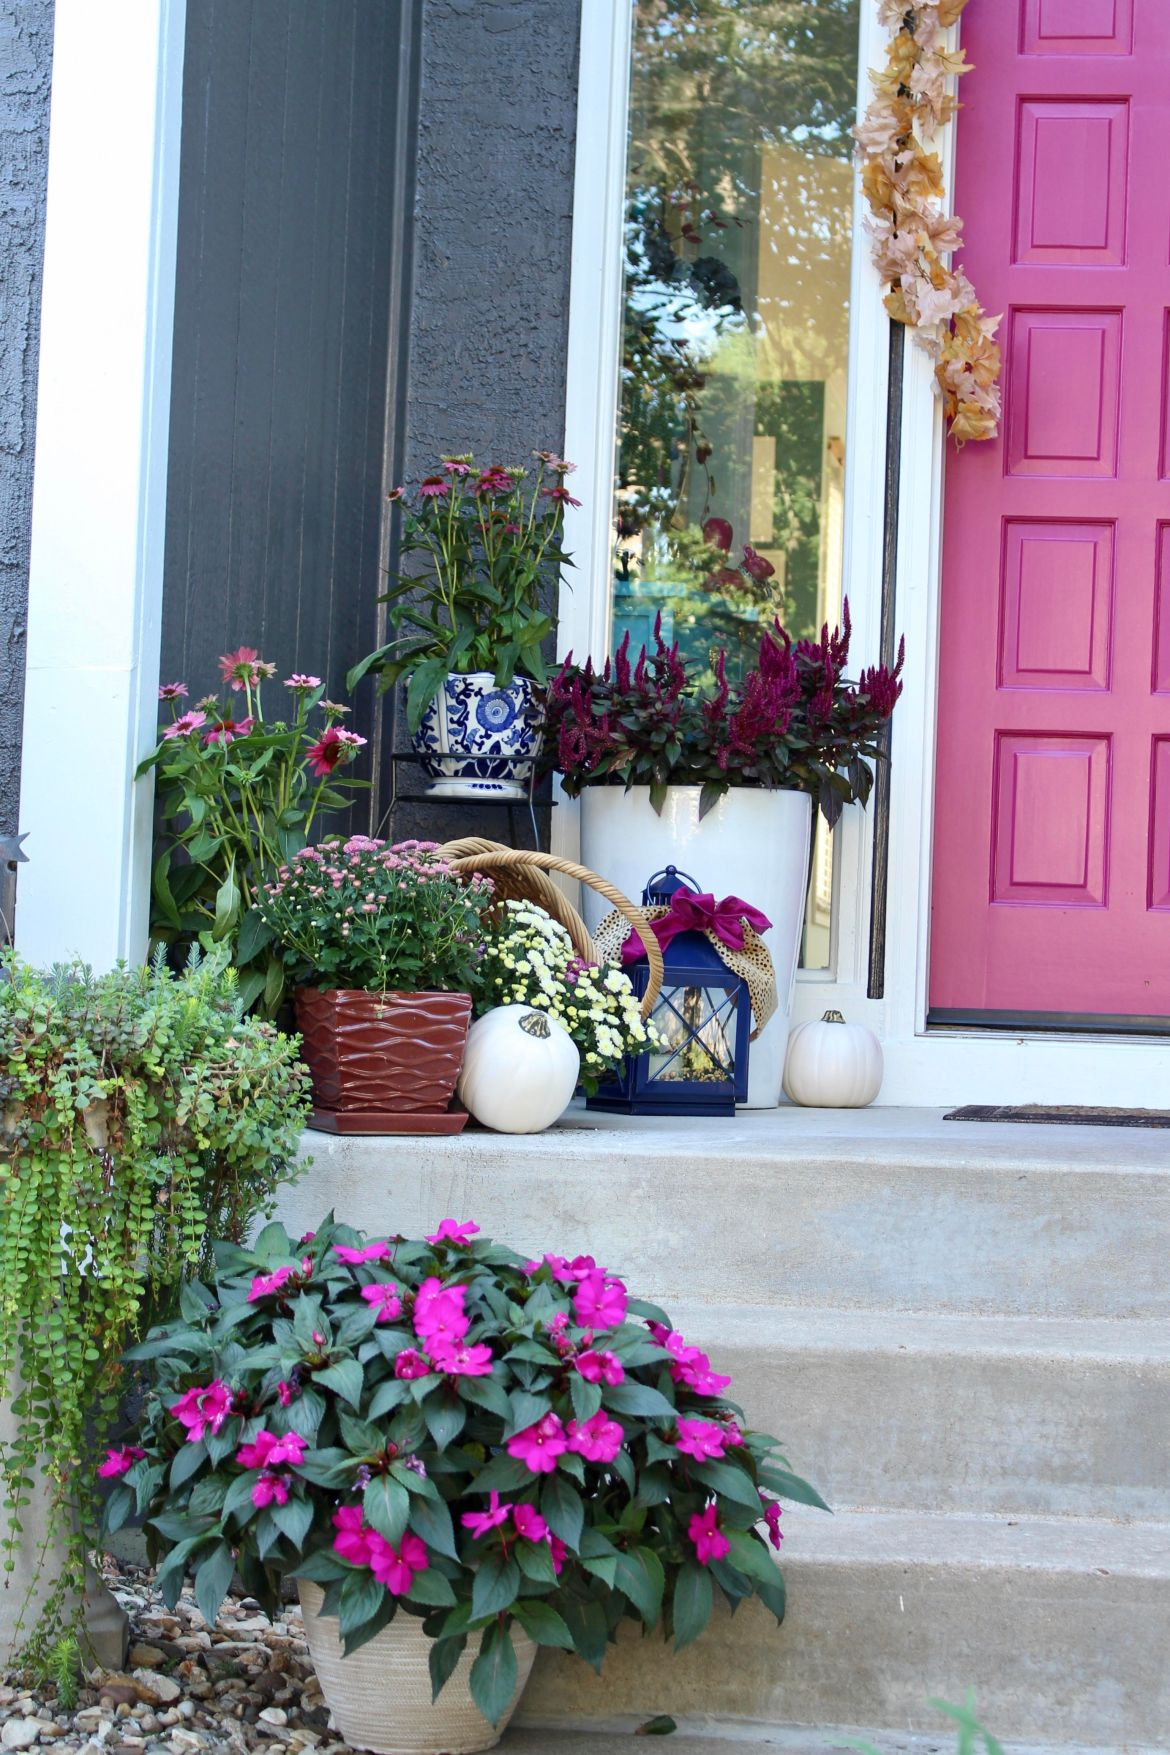 Fall Porch with Blue and White Planters